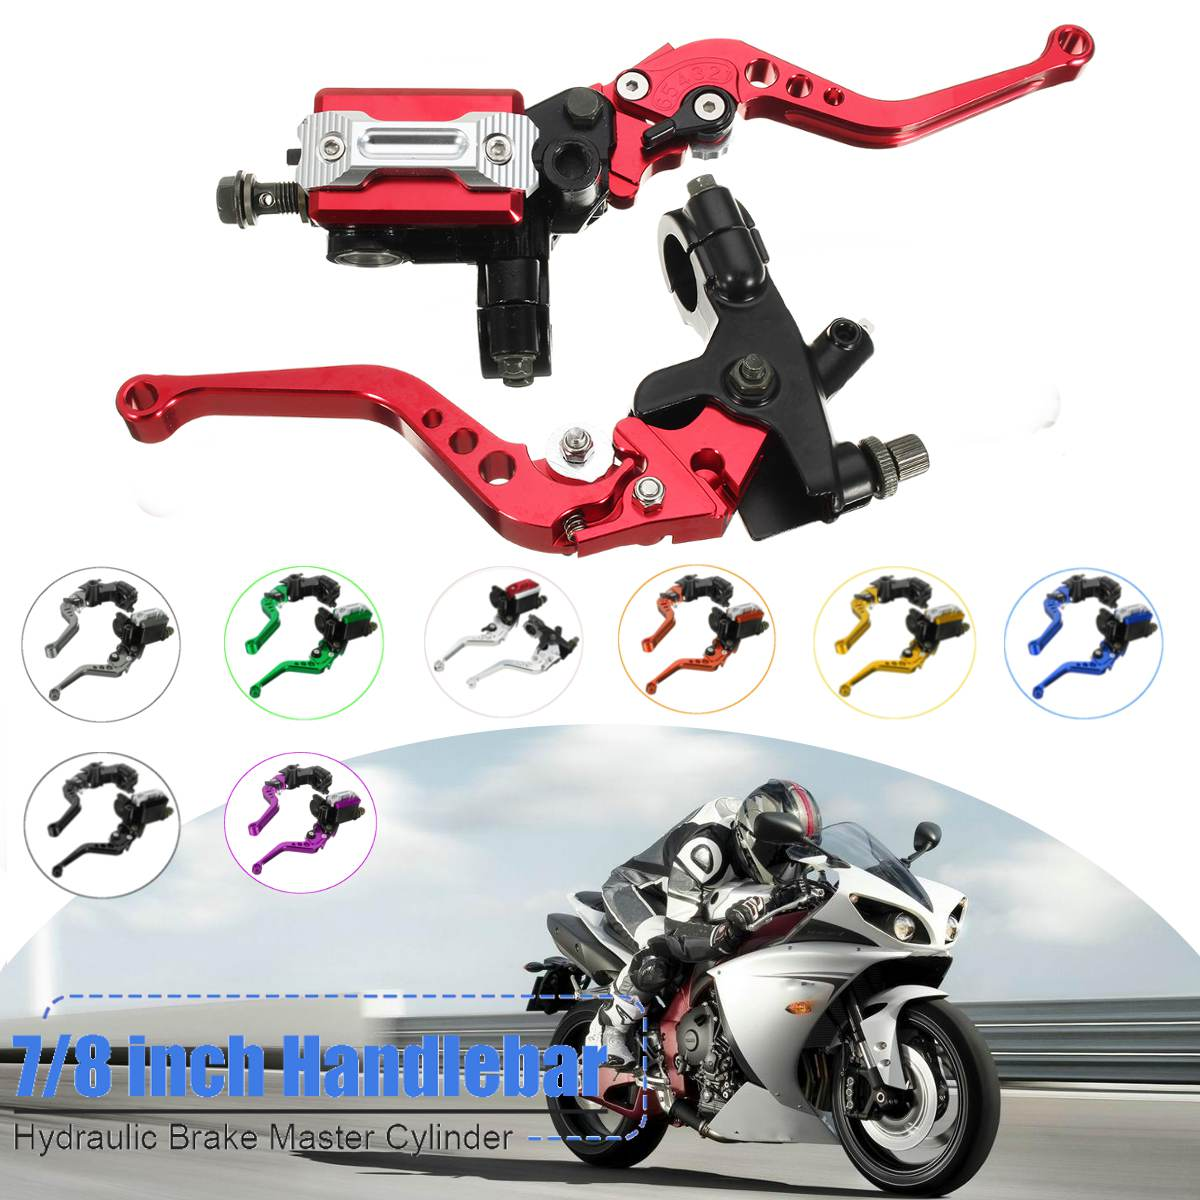 Motorcycle 7/8 CNC Front Brake Hydraulic Clutch Master Cylinder Lever Set Reservoir motorcycle parts racing cnc aluminum adjustable hydraulic brake master cylinder reservoir colorful short levers kit black 7 8 22mm for honda rc51 rvt1000 sp 1 sp 2 2000 2006